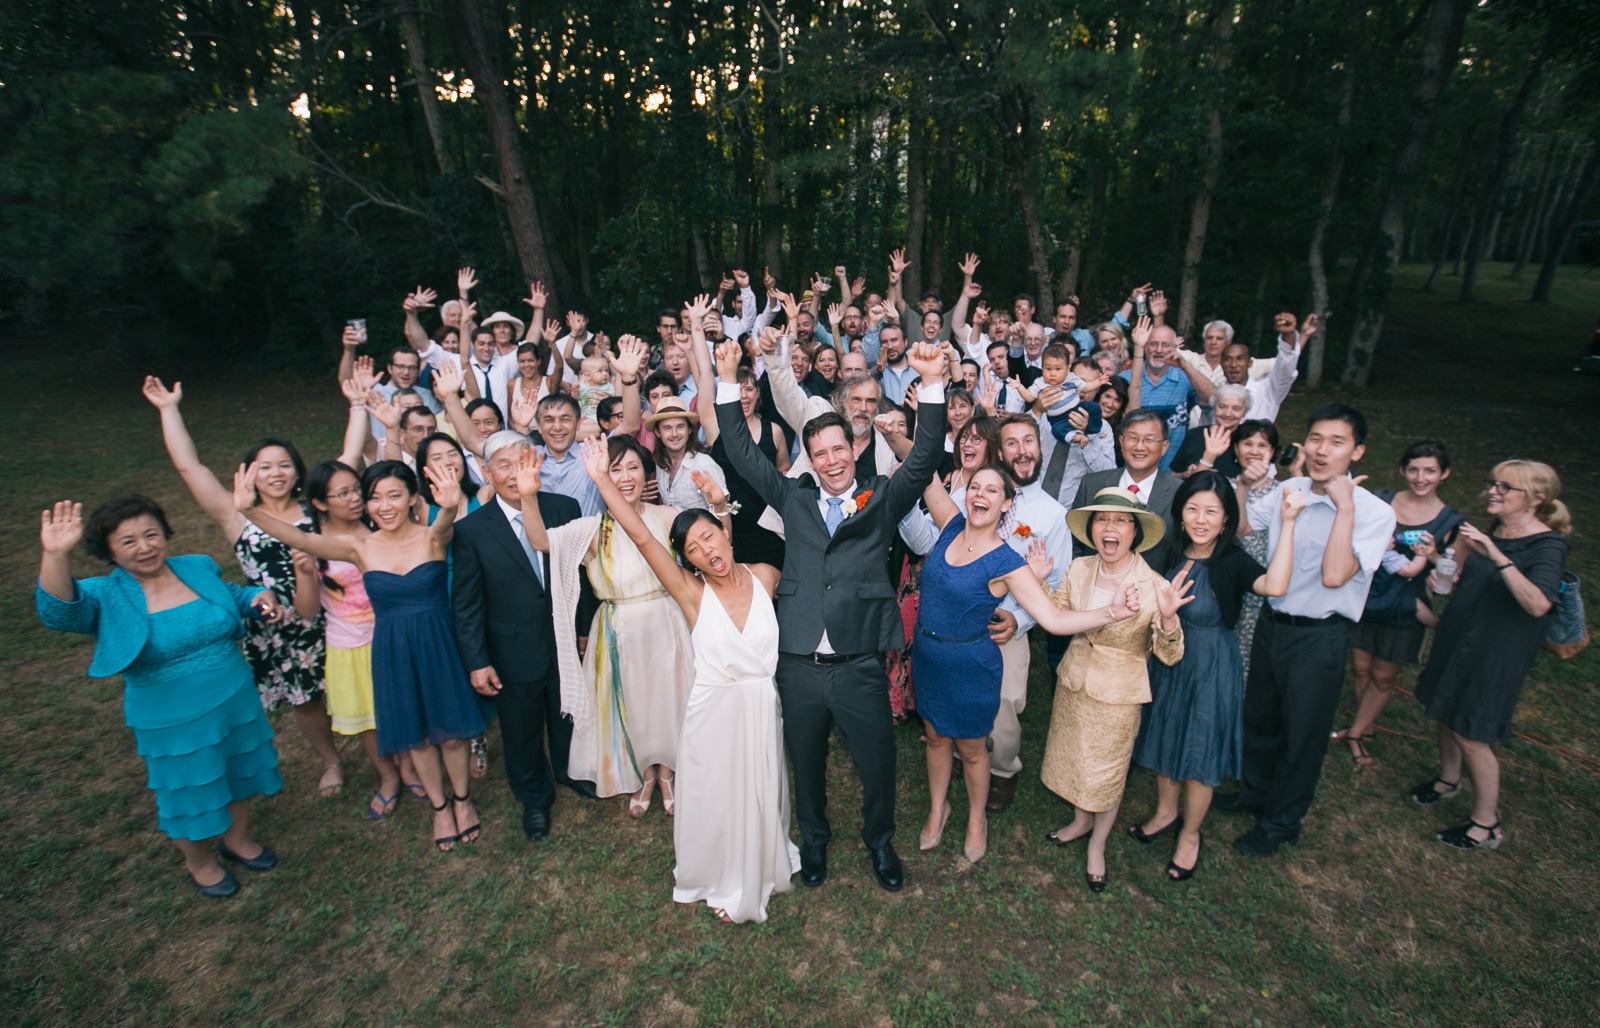 The entire wedding party including the bridge & groom's families and all friends